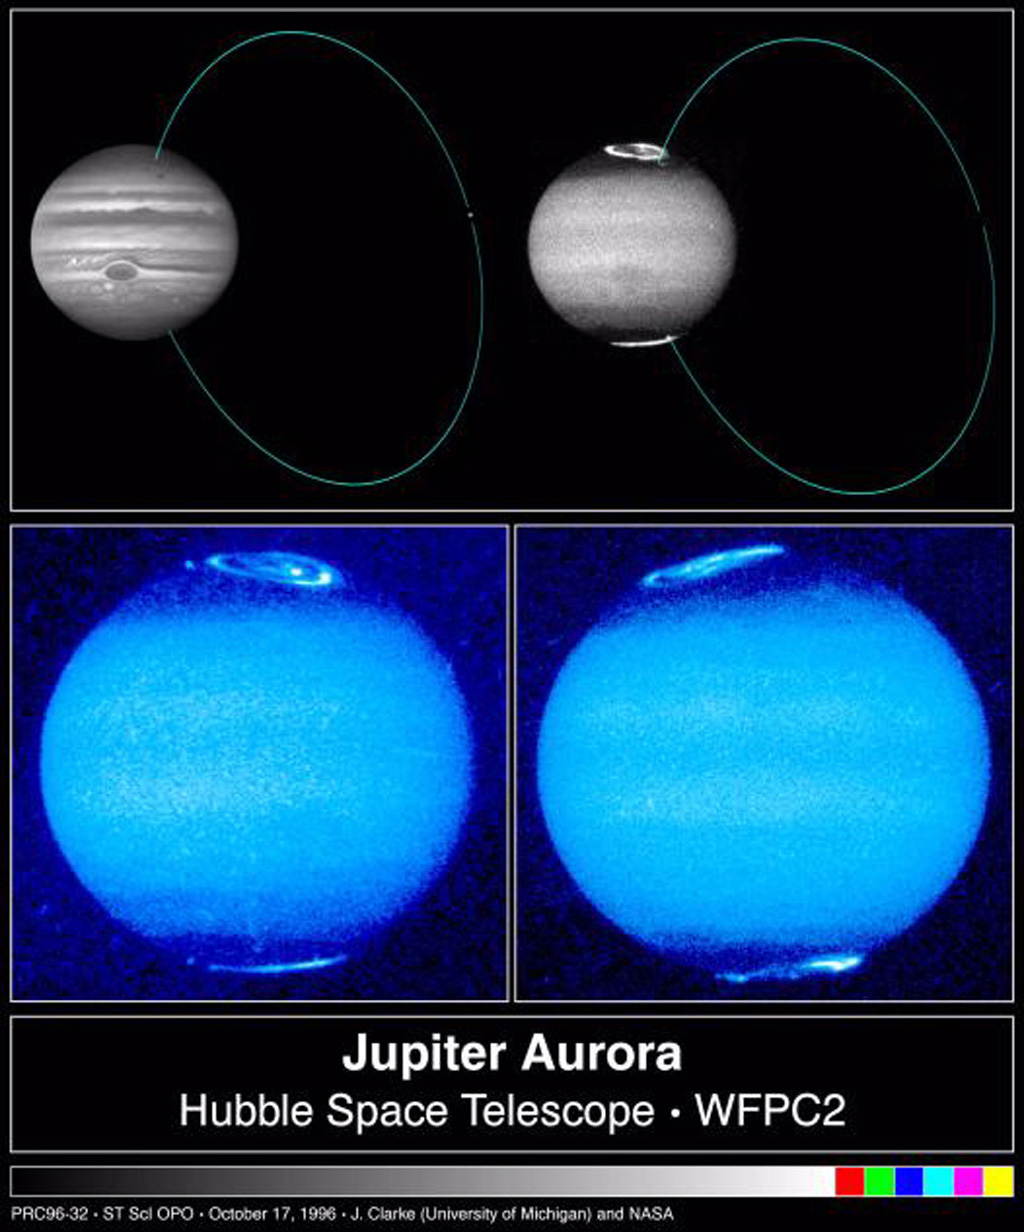 These images, taken by NASA's Hubble Space Telescope, reveal changes in Jupiter's auroral emissions and how small auroral spots just outside the emission rings are linked to the planet's volcanic moon, Io.